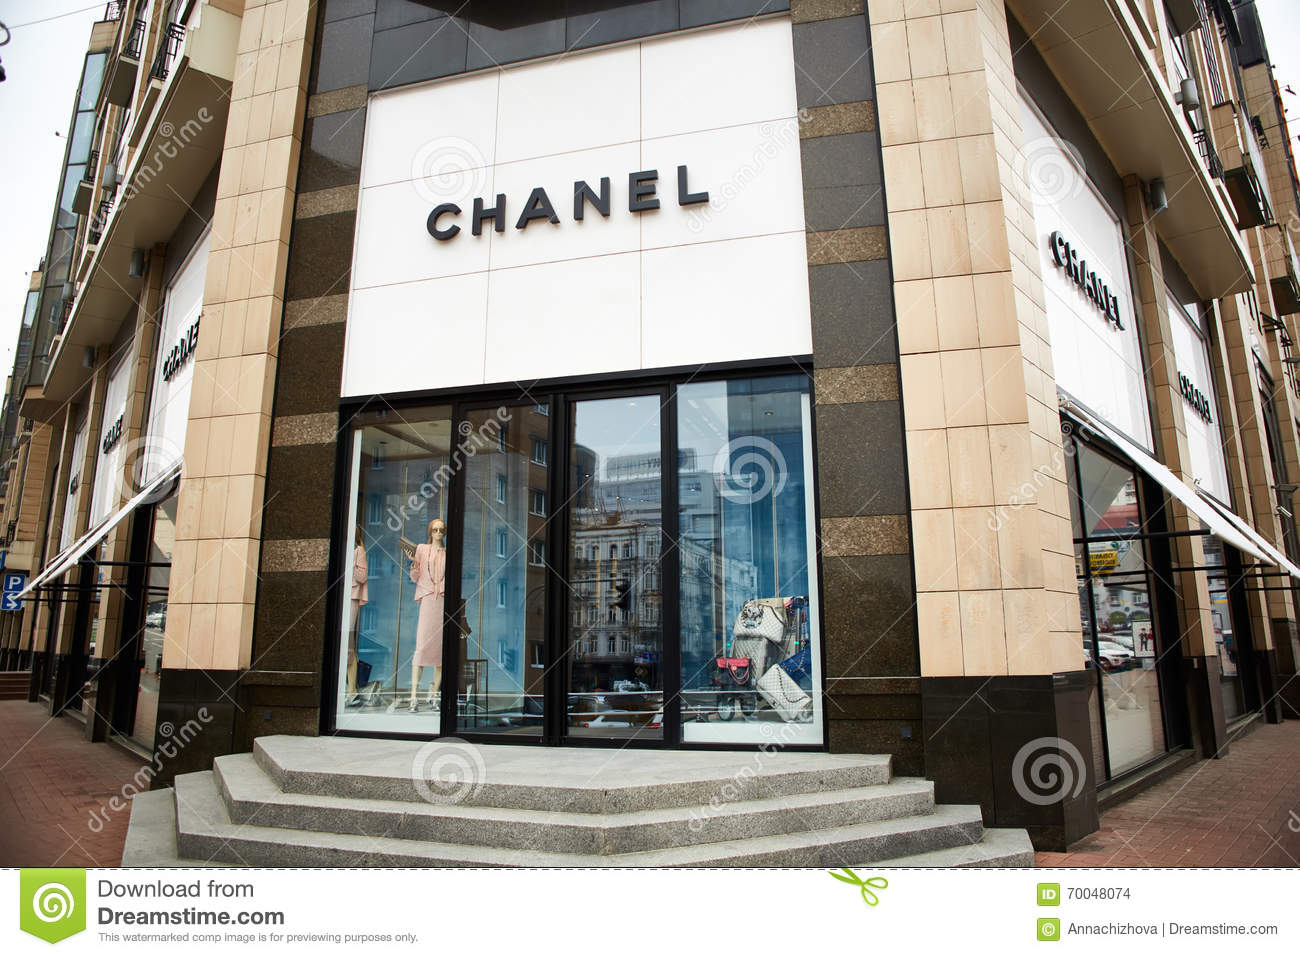 Kiev ukraine april 12 2016 chanel retail store for French house of high fashion